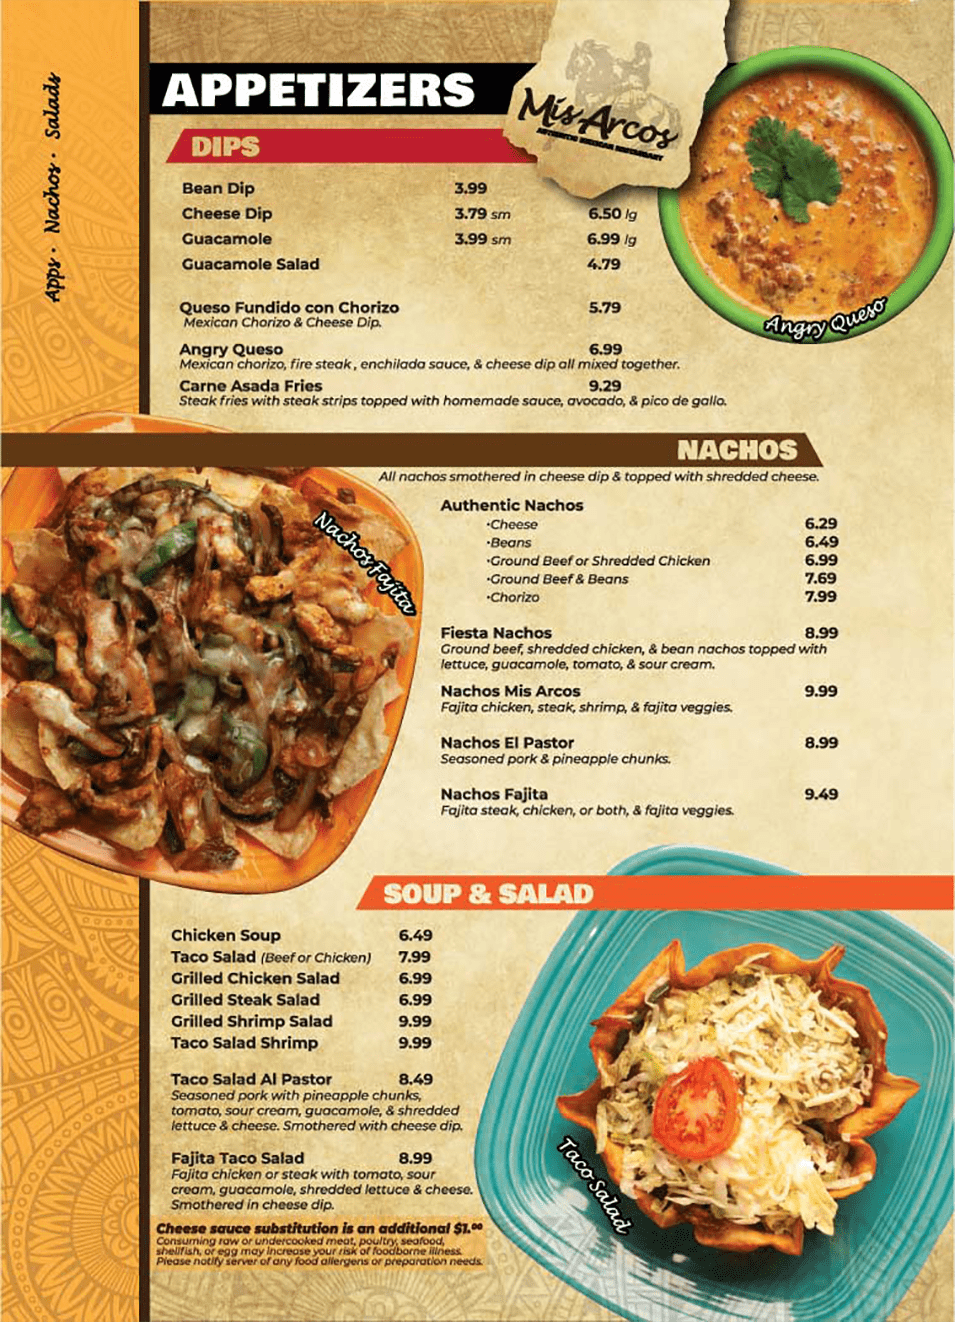 Menu Appetizers Mis Arcos Authentic Mexican Restaurant